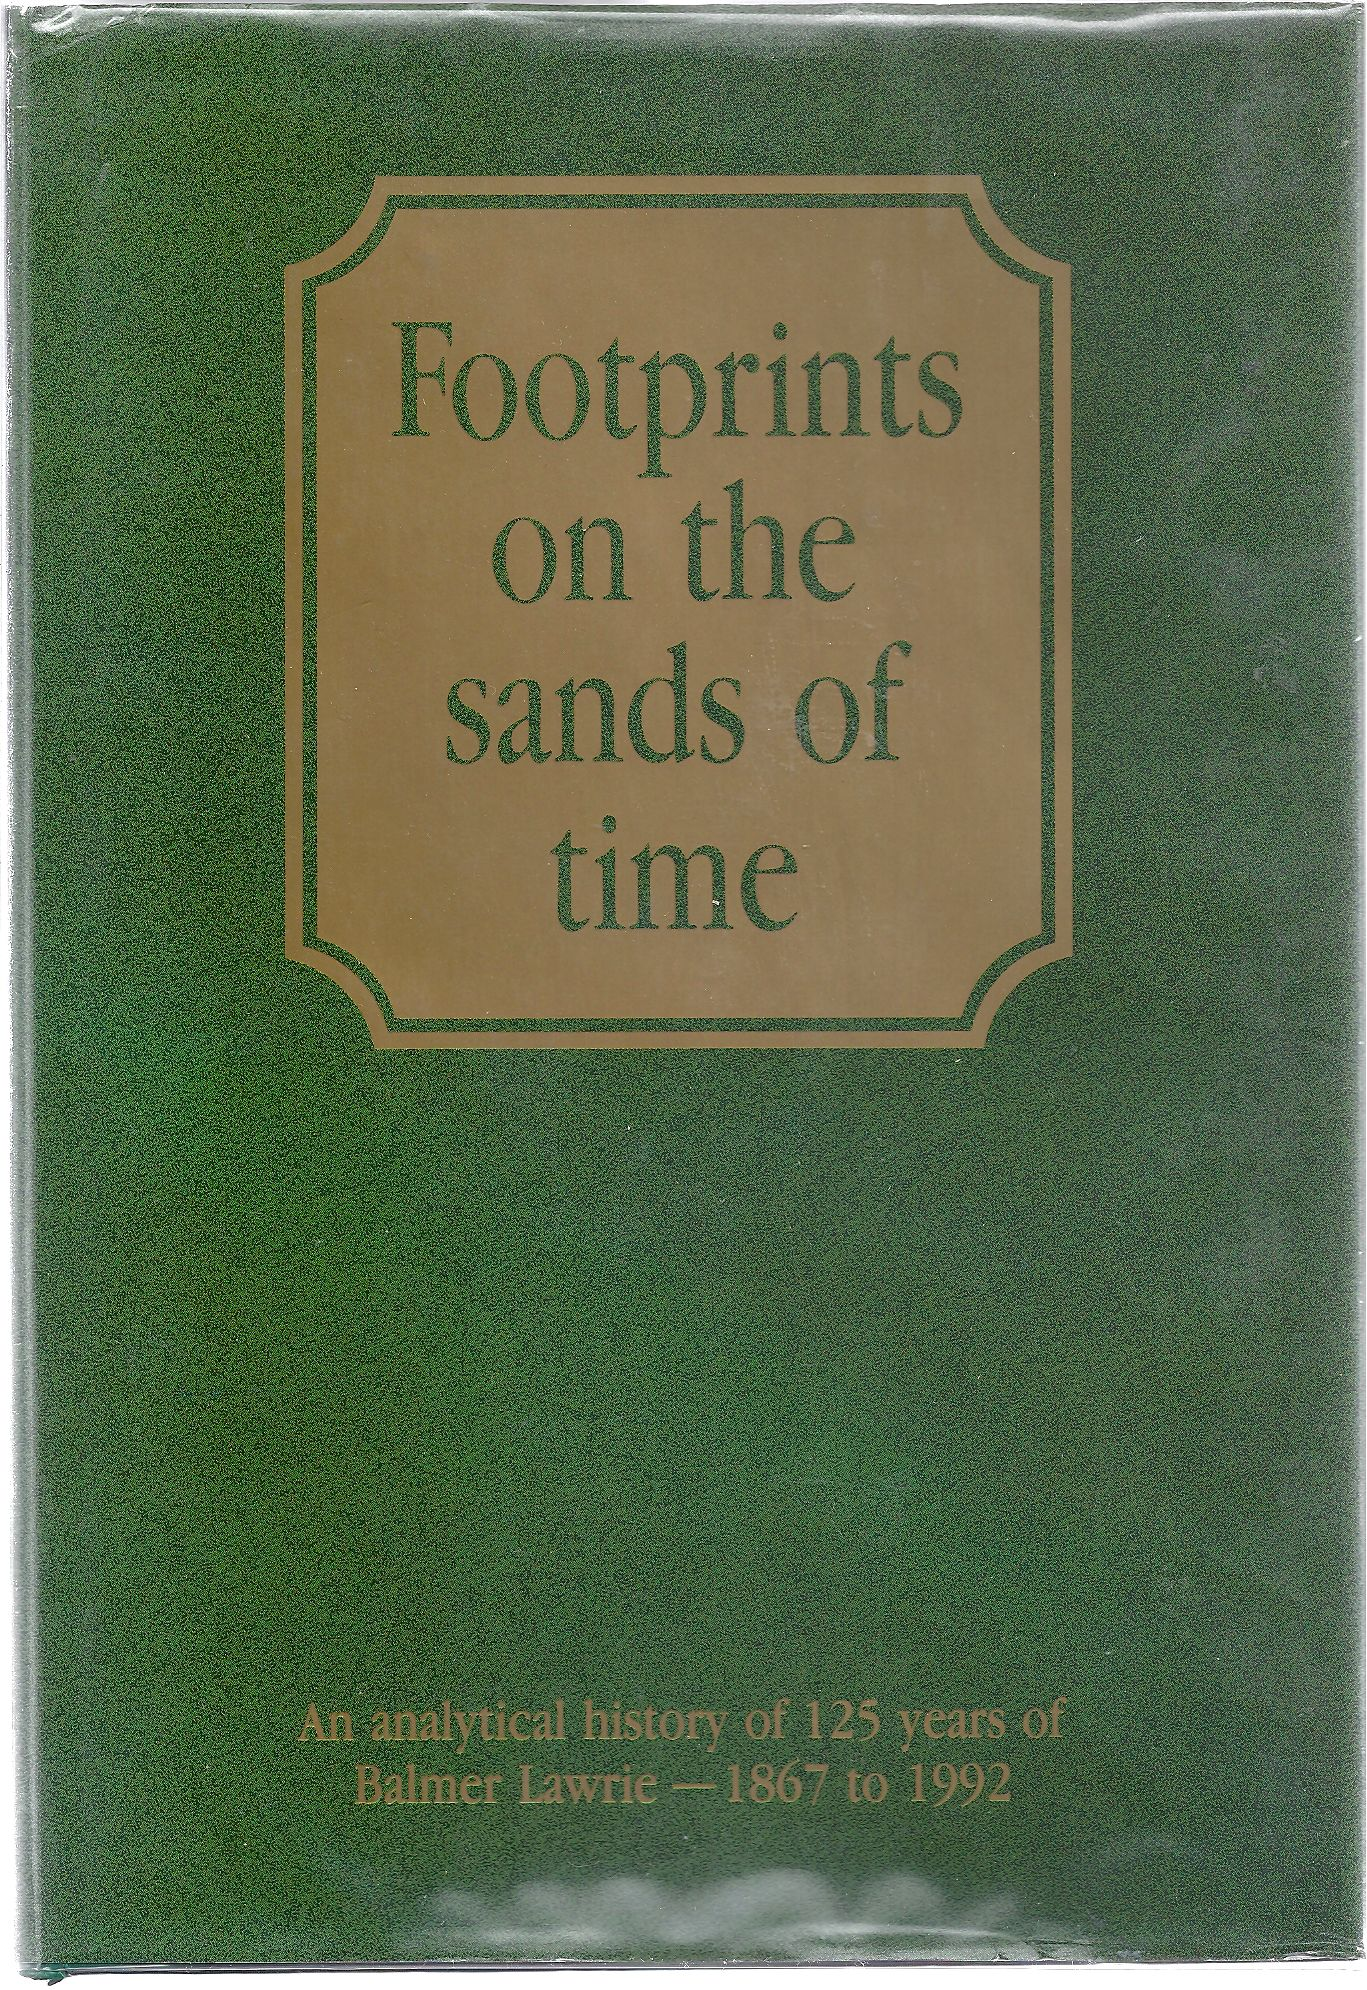 Image for Footprints on the Sands of Time An analytical history of 125 years of Balmer Lawrie - 1867 to 1992